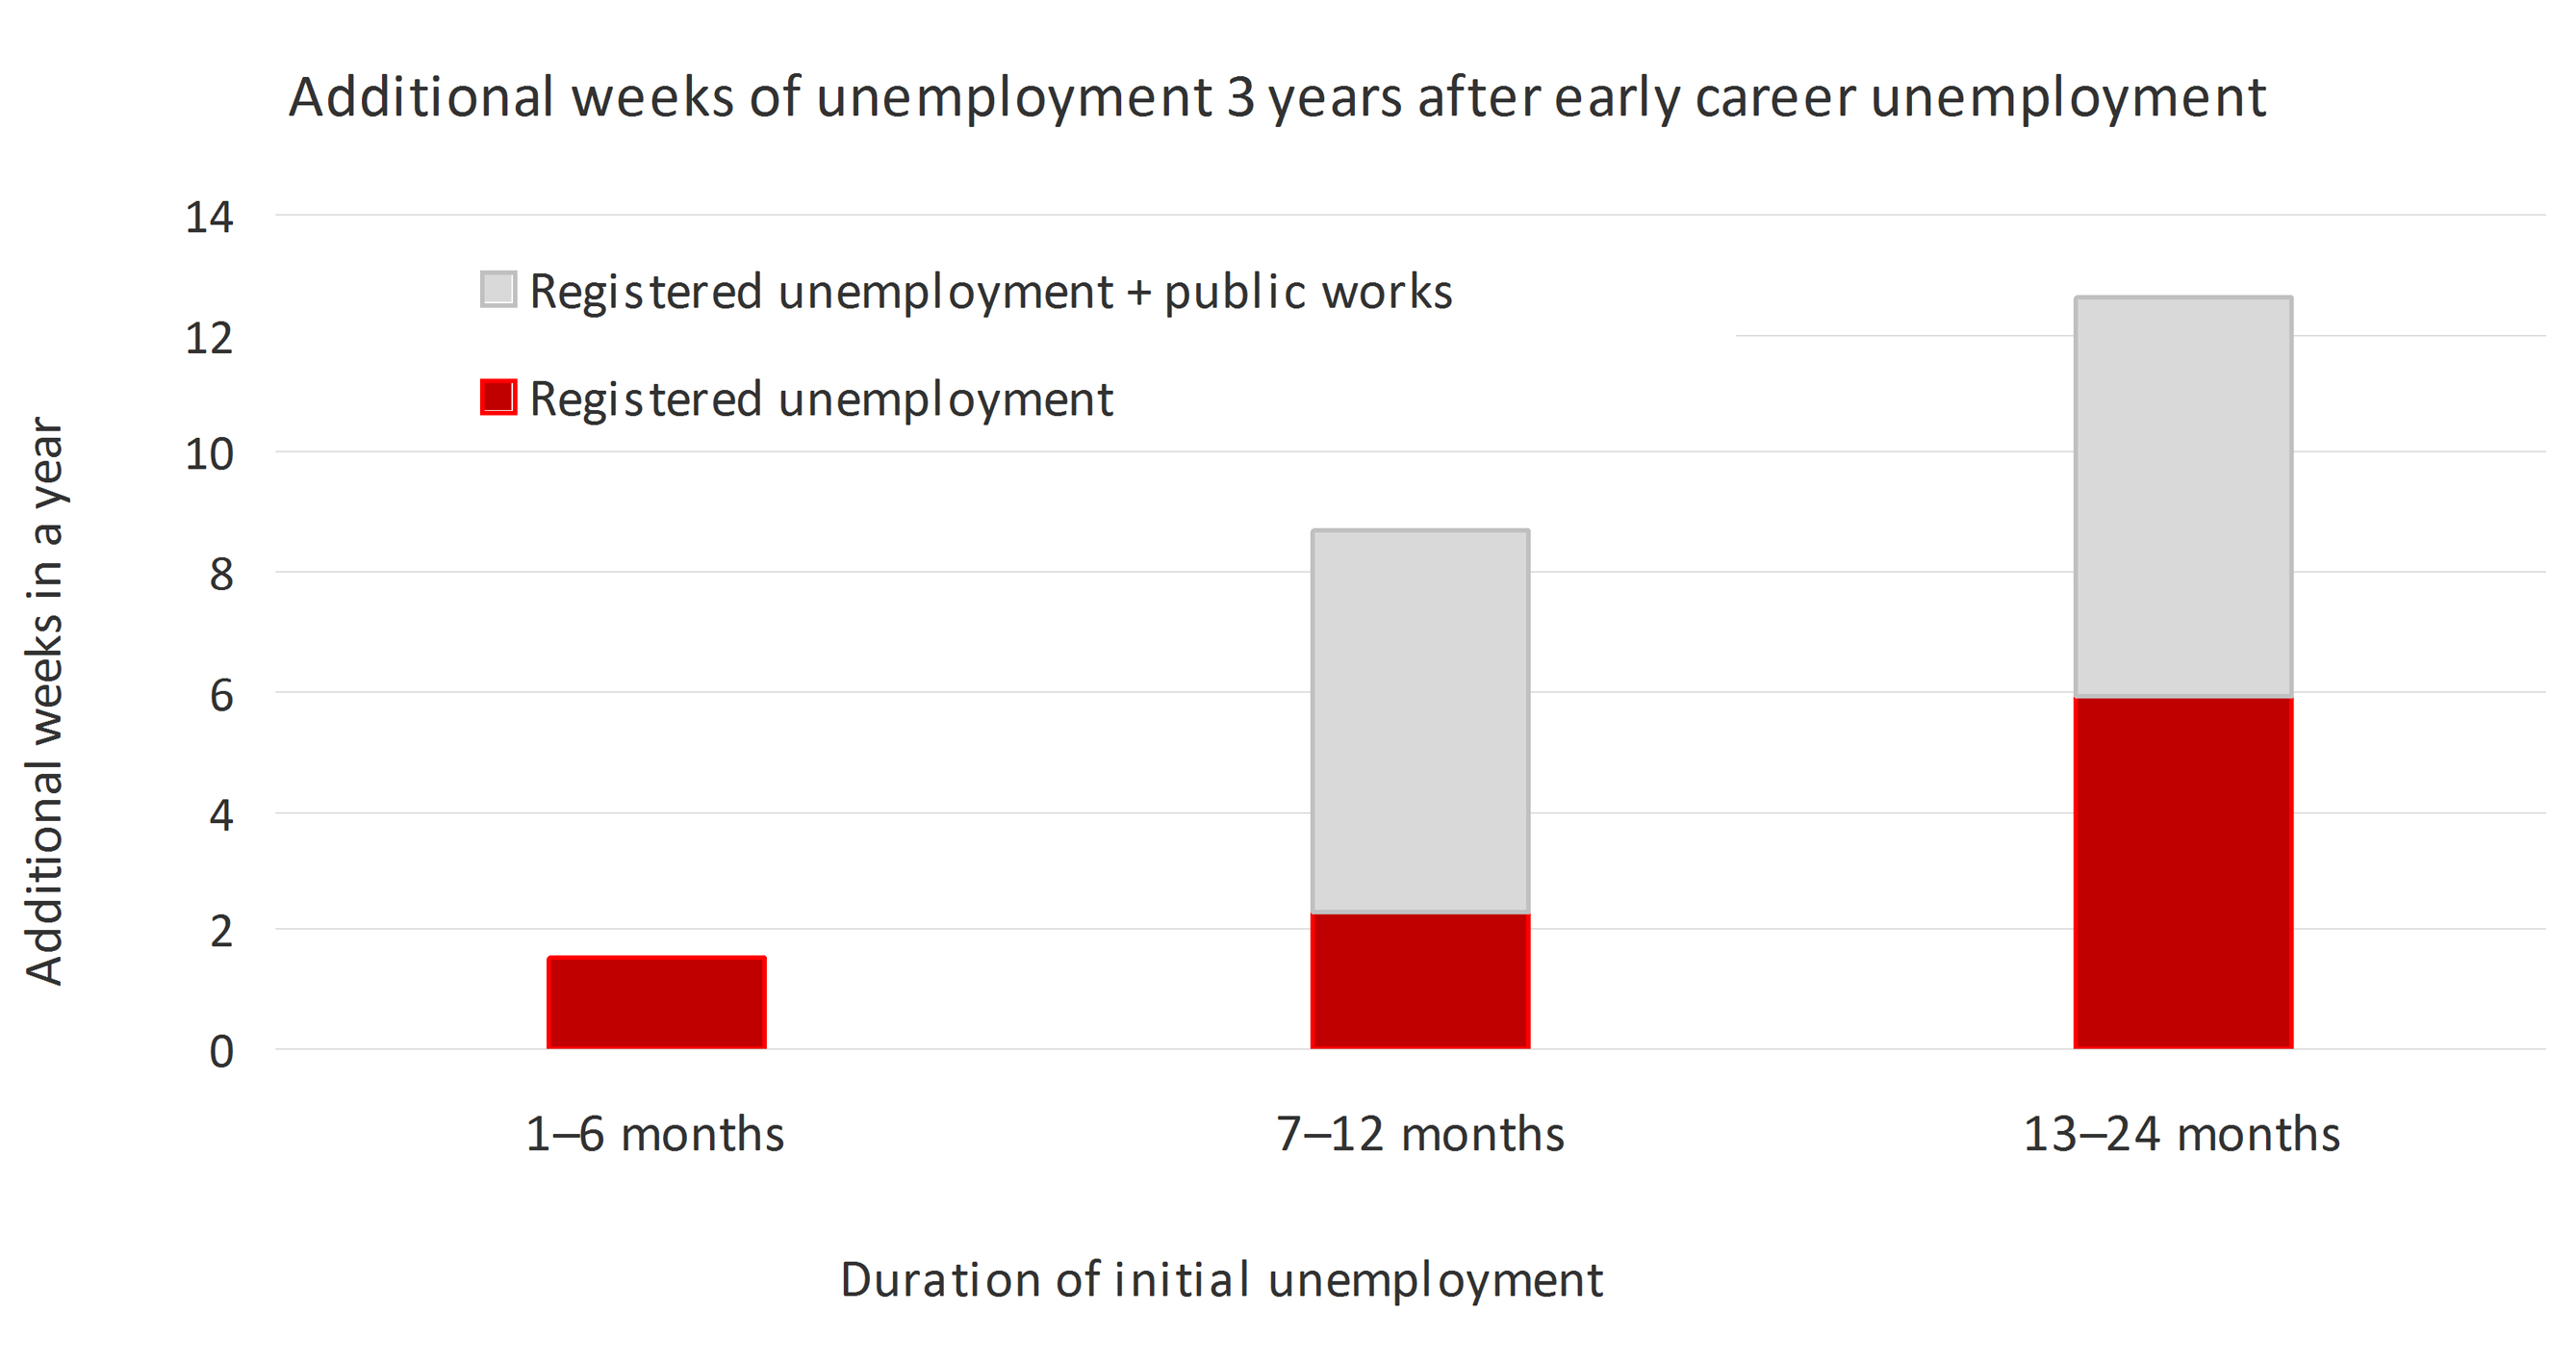 Early career unemployment hits twice